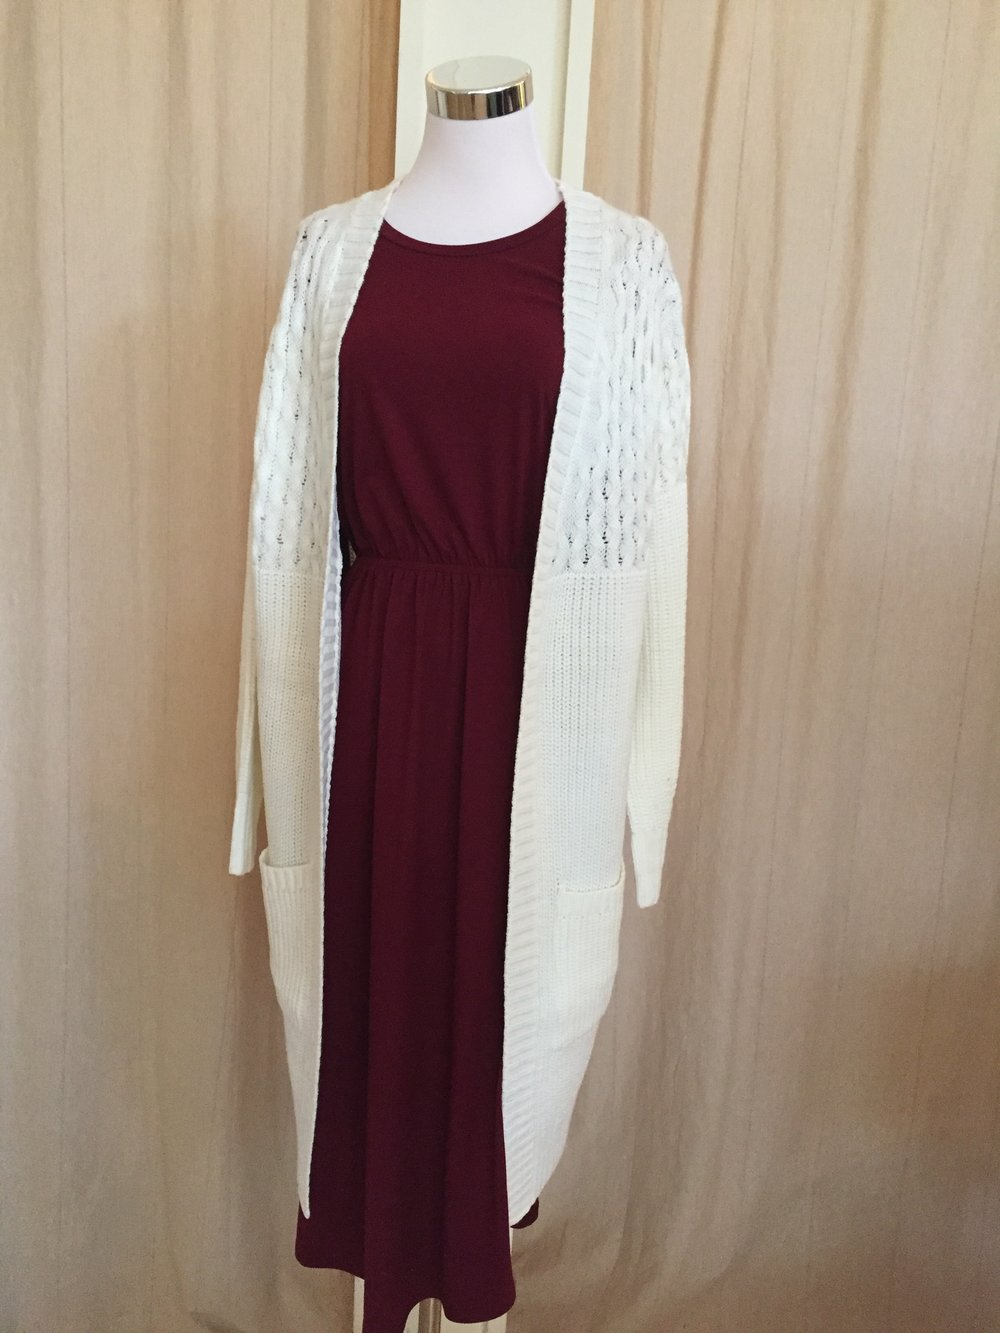 Chunky knit cardi ($45 salmon, grey, white)